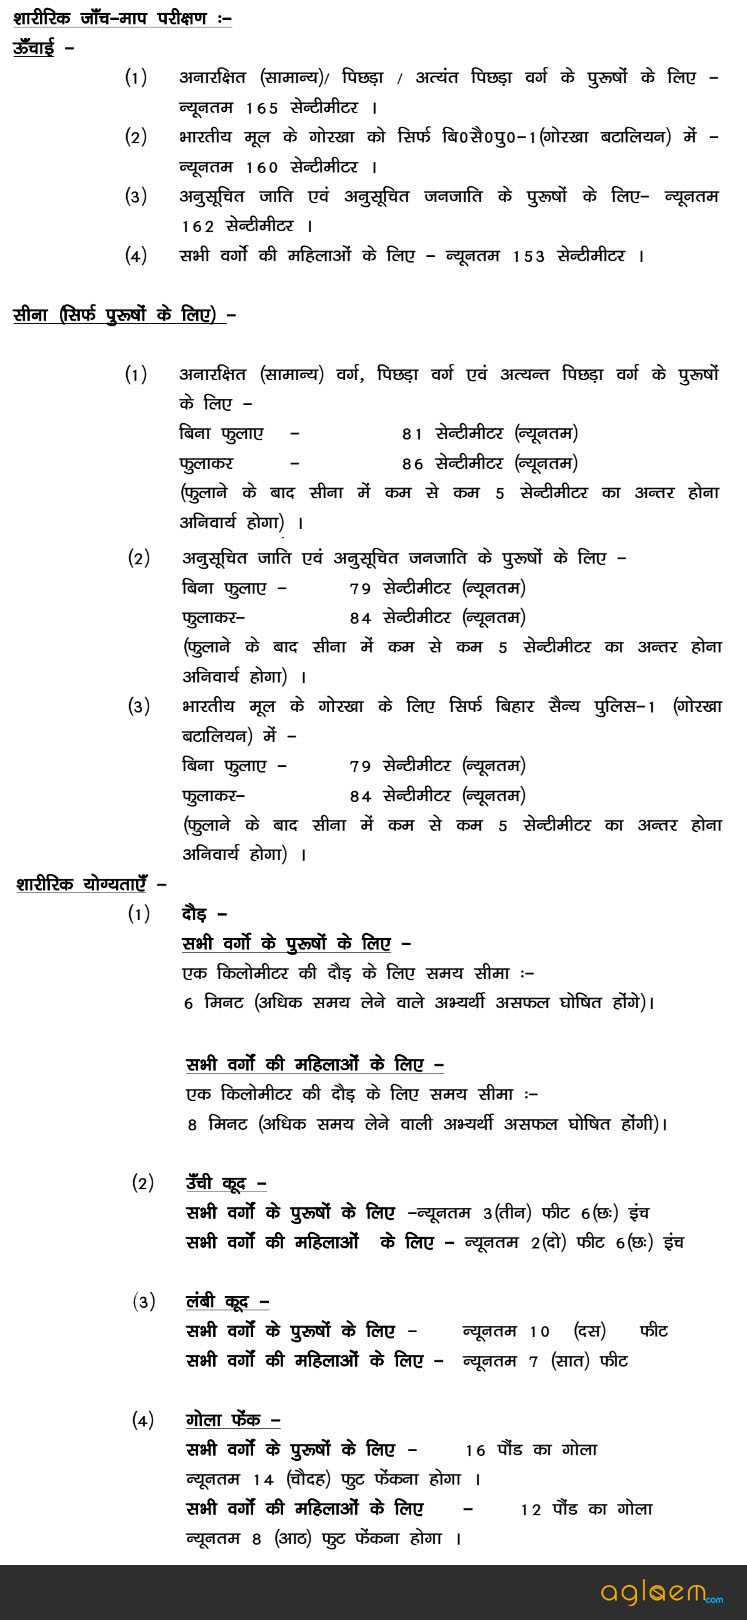 Bihar Police Recruitment 2016